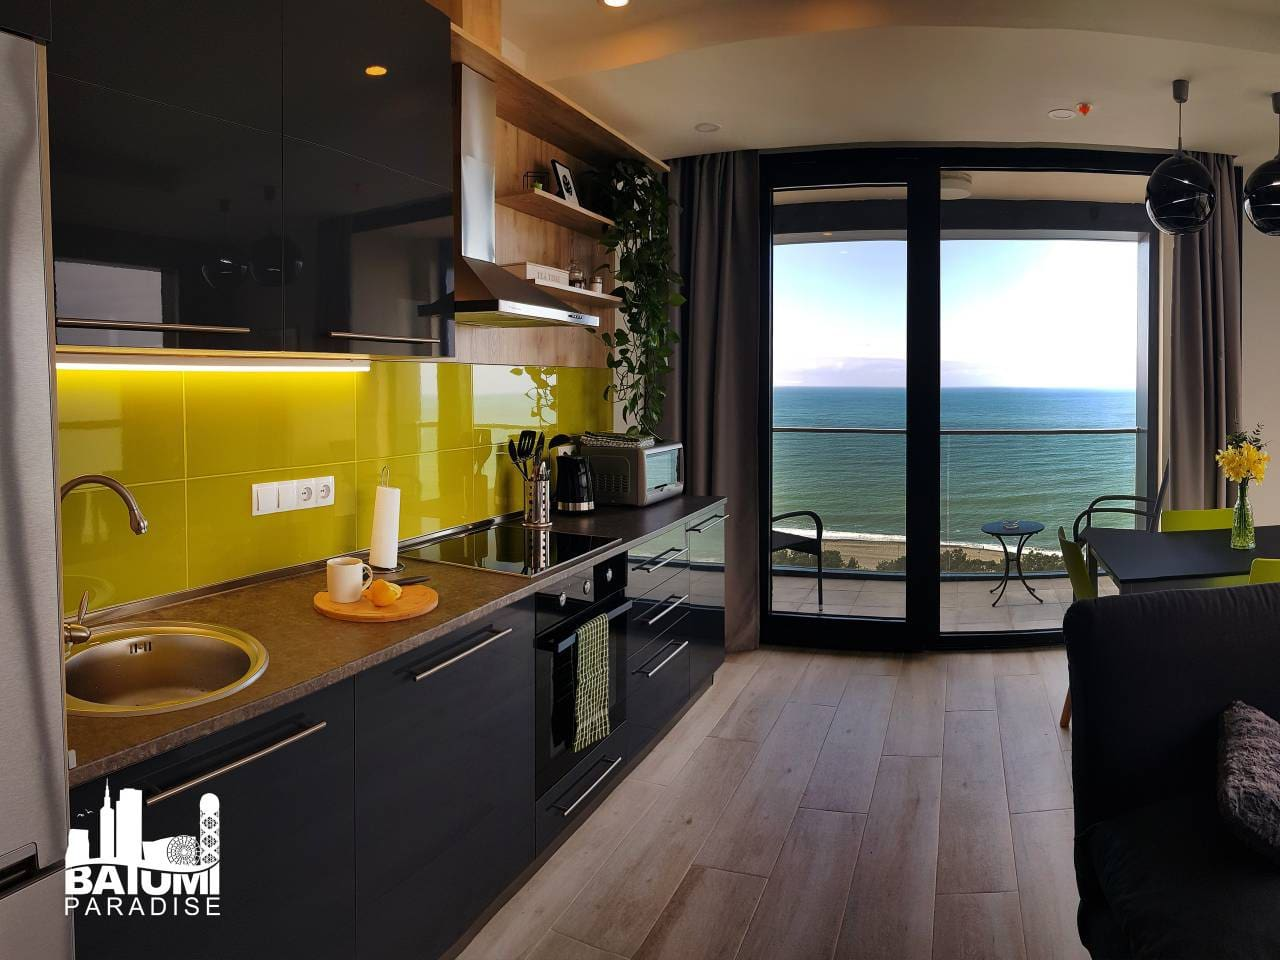 Beachfront Apartment with Panoramic View kitchen and the view of the Black Sea.